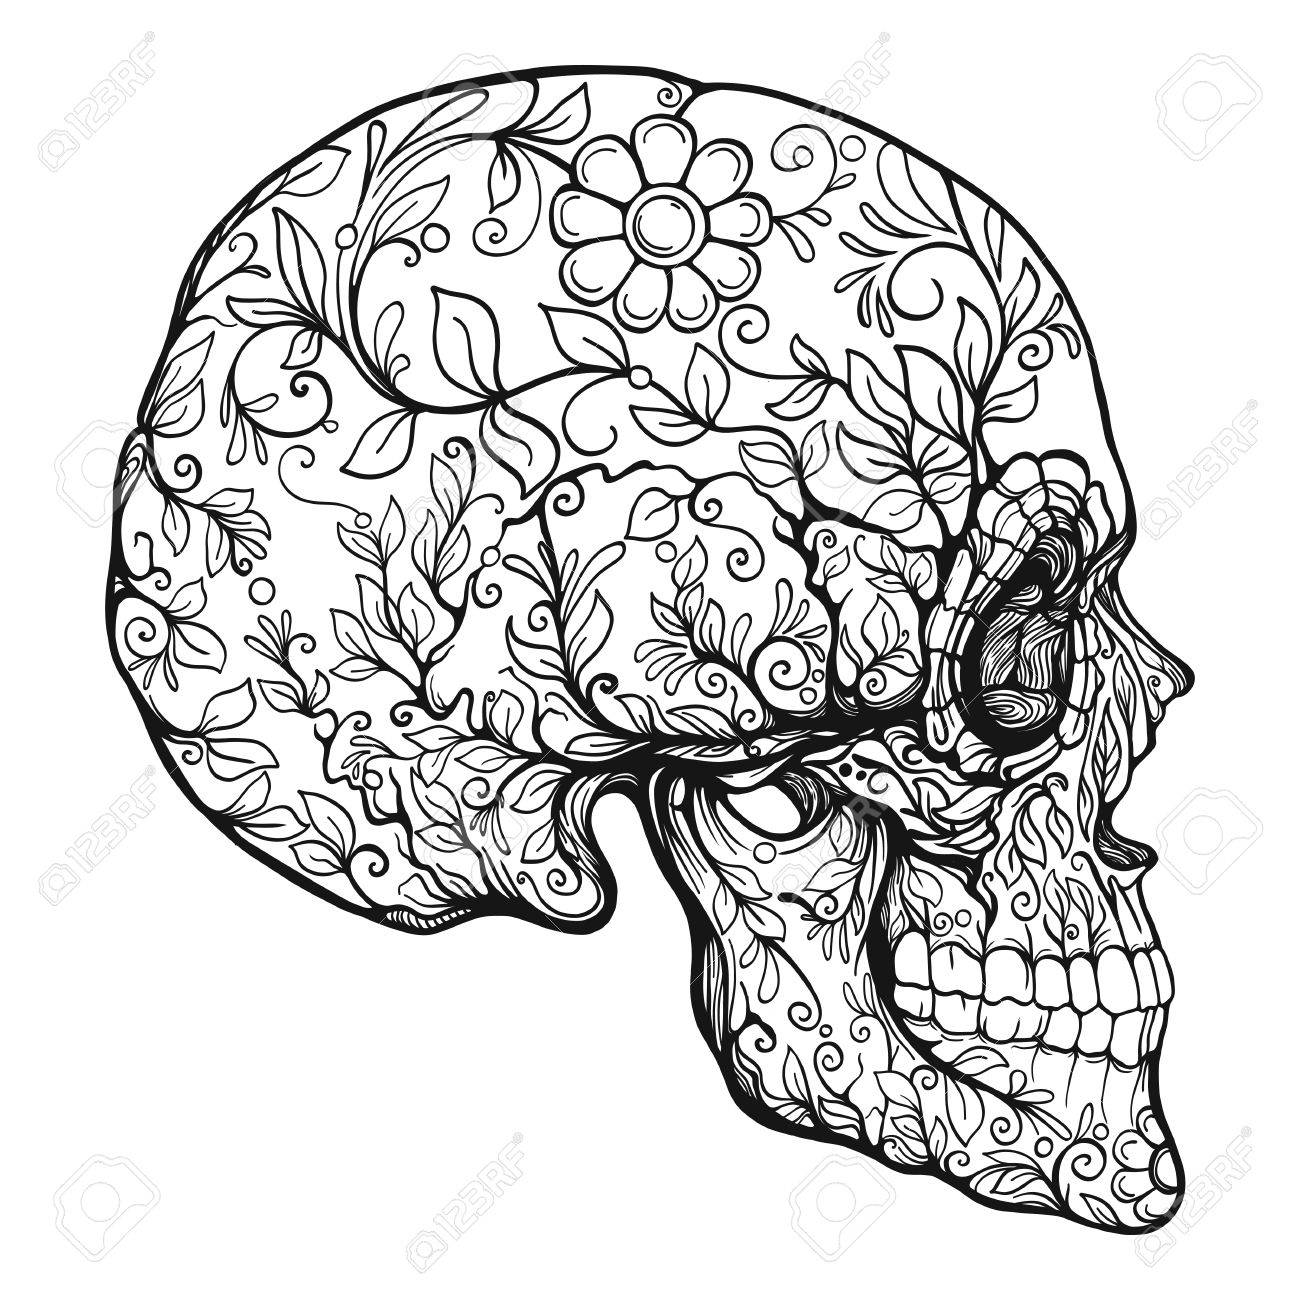 Sugar skull. The traditional symbol of the Day of the Dead. - 83191174